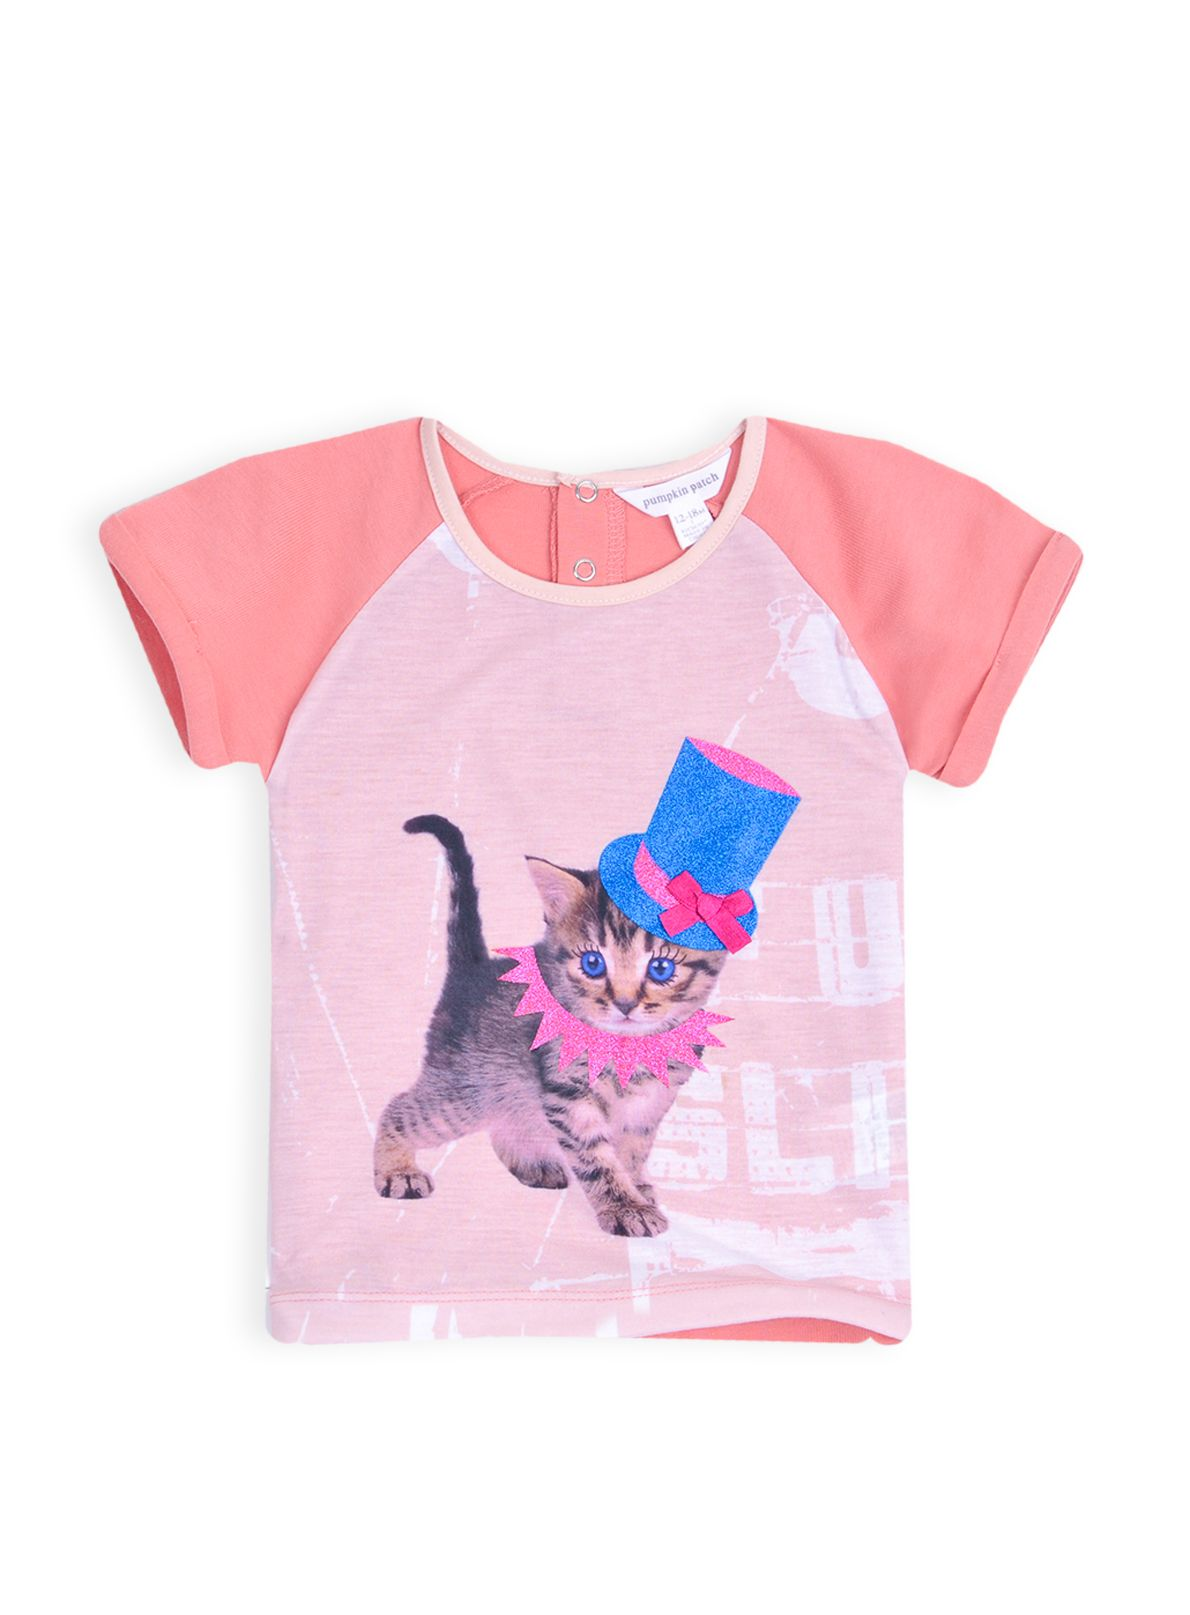 Girls raglan carousel top